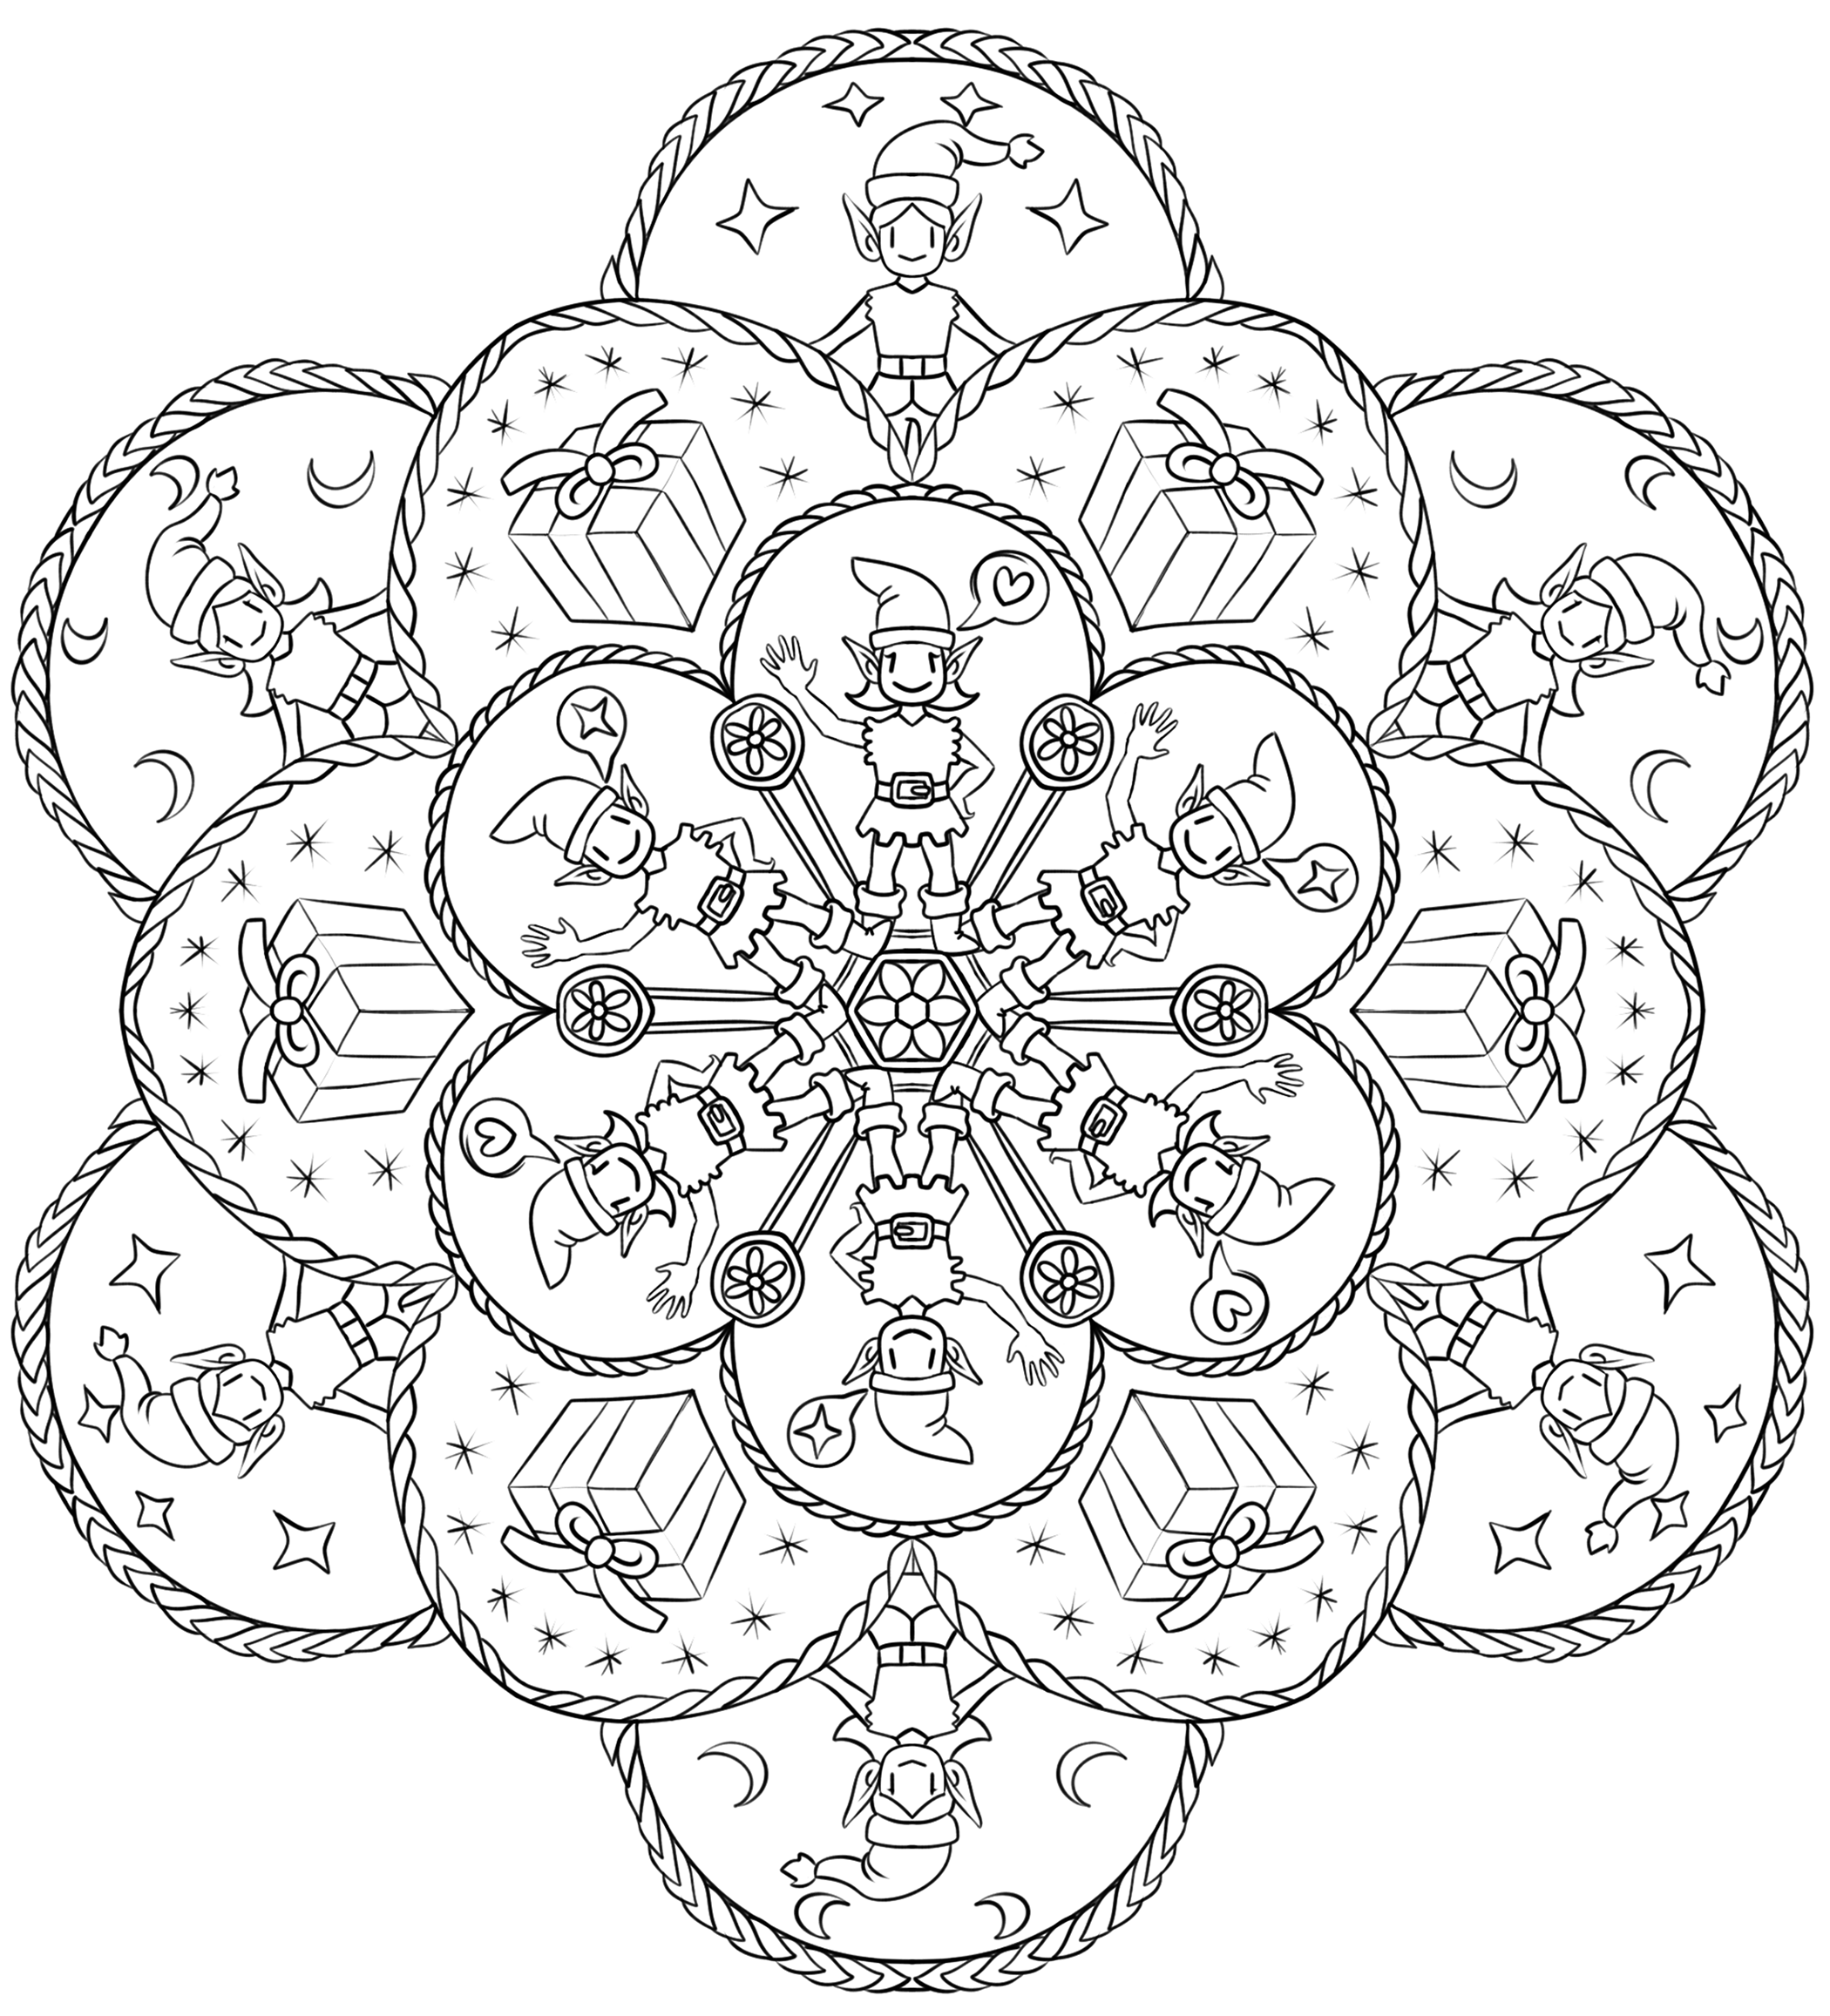 To Stress By Coloring Christmas Mandalas Universal Health Care